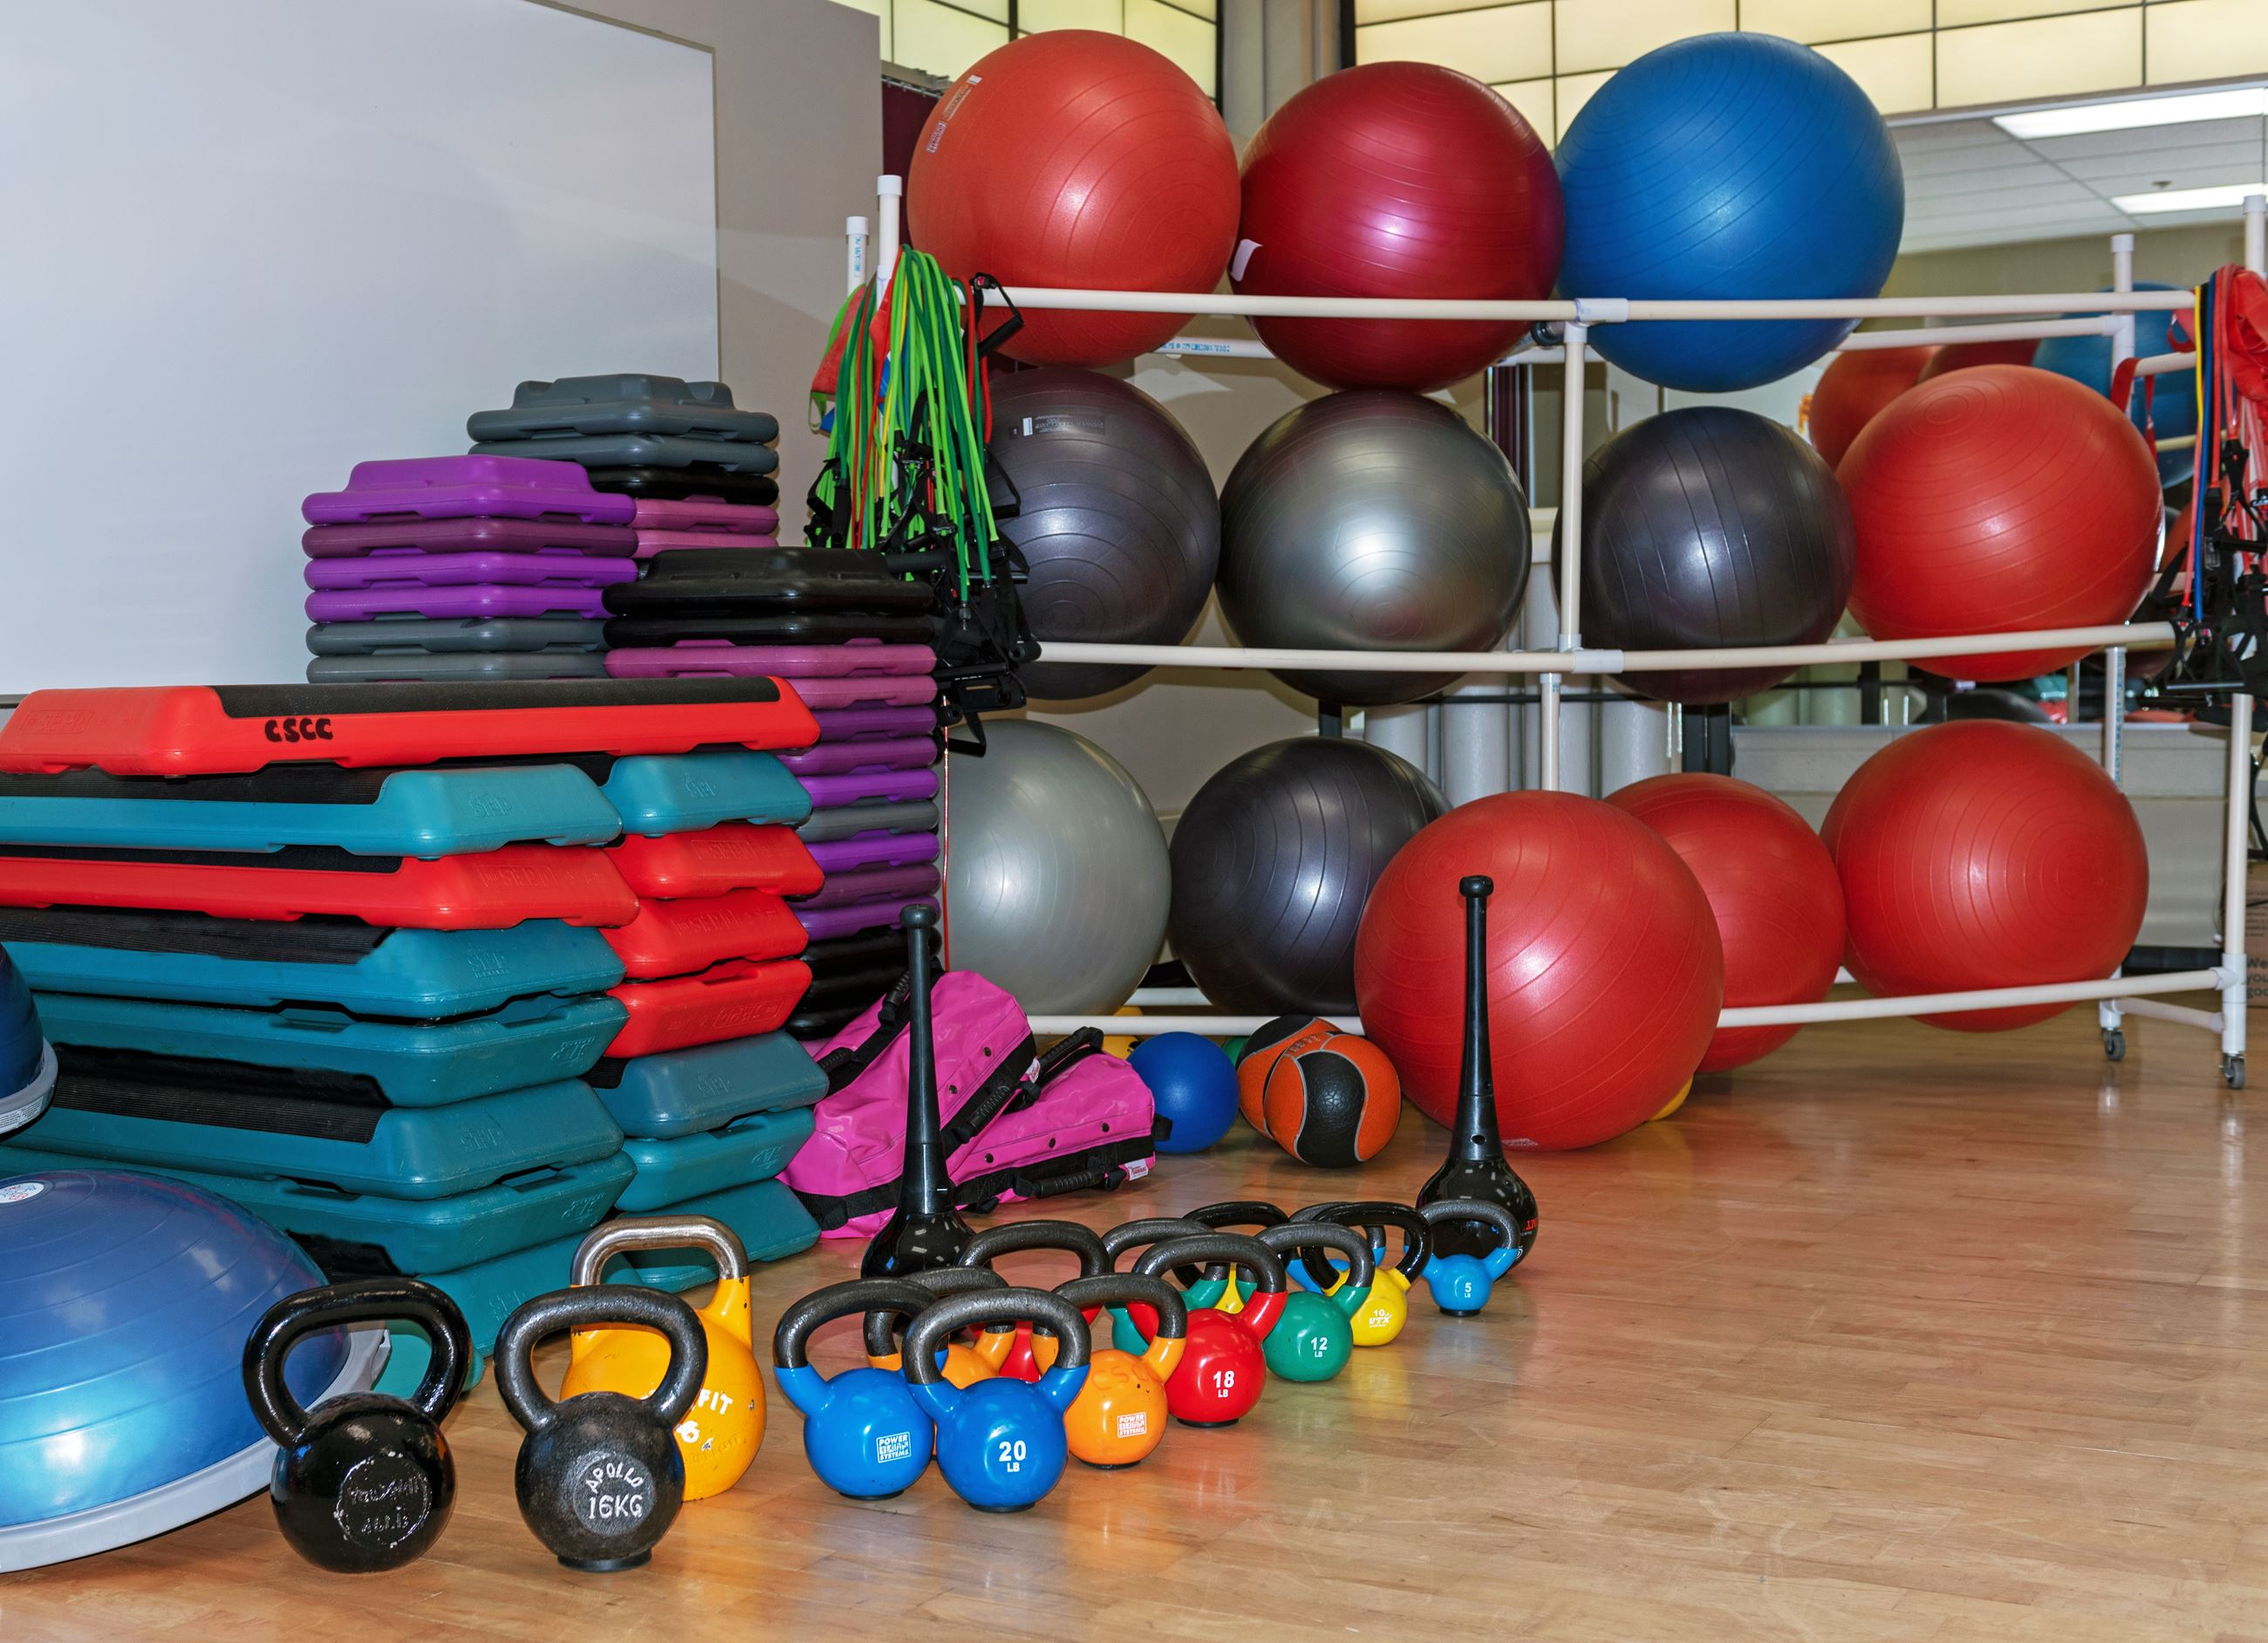 Fitness Class Equipment, kettlebells, steps, balls and more.